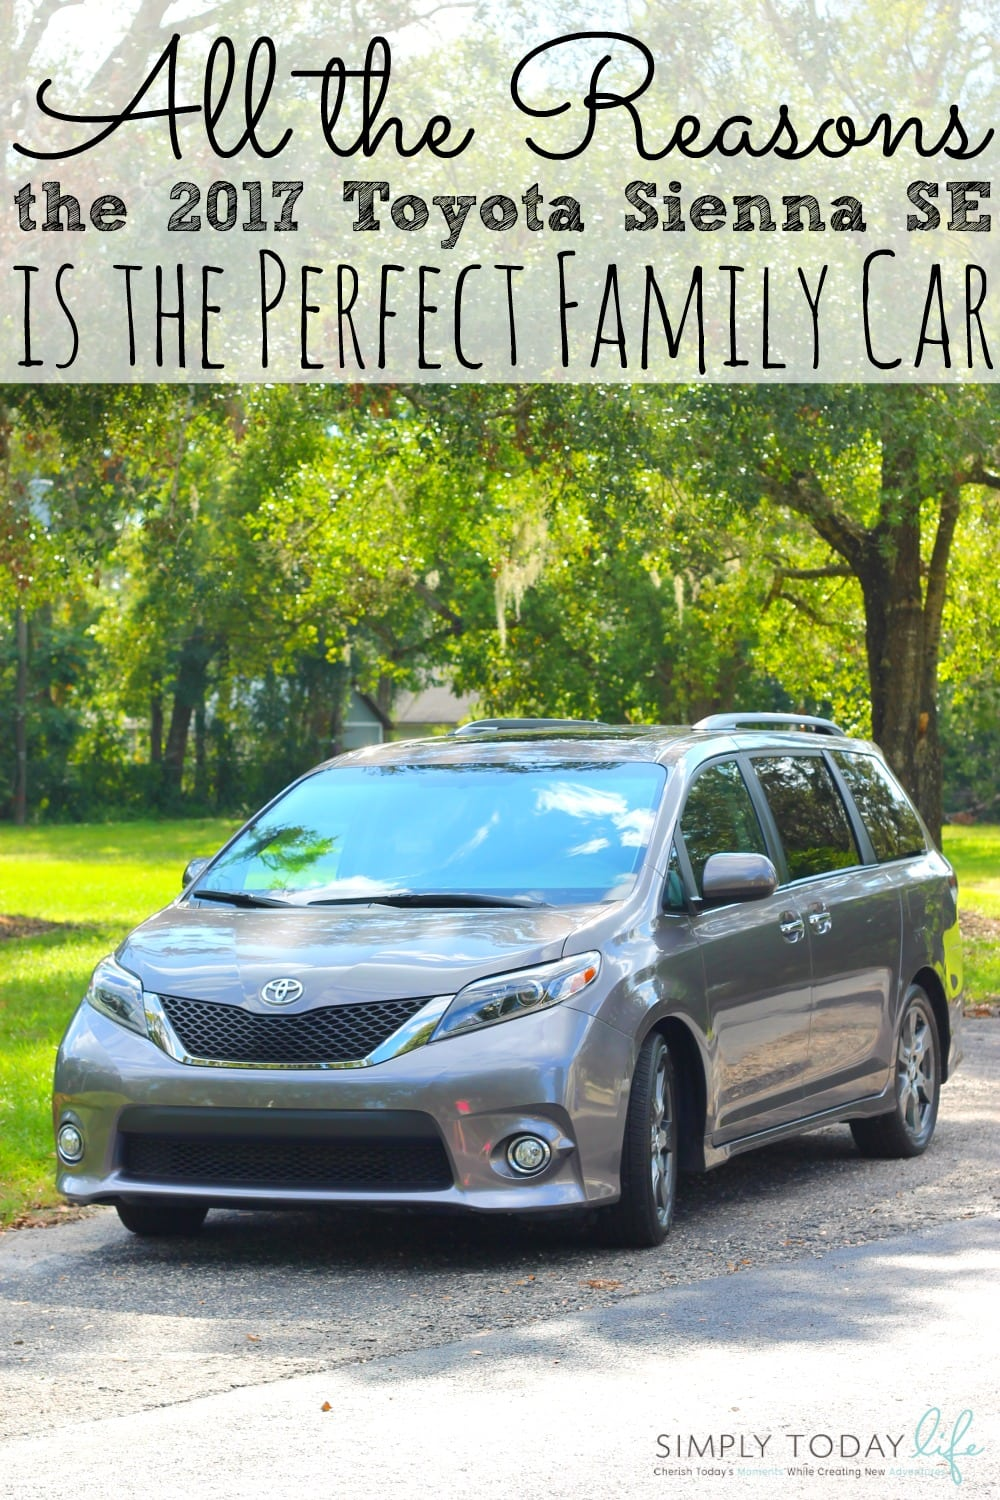 Reasons The Toyota Sienna SE Is The Perfect Family Car - simplytodaylife.com